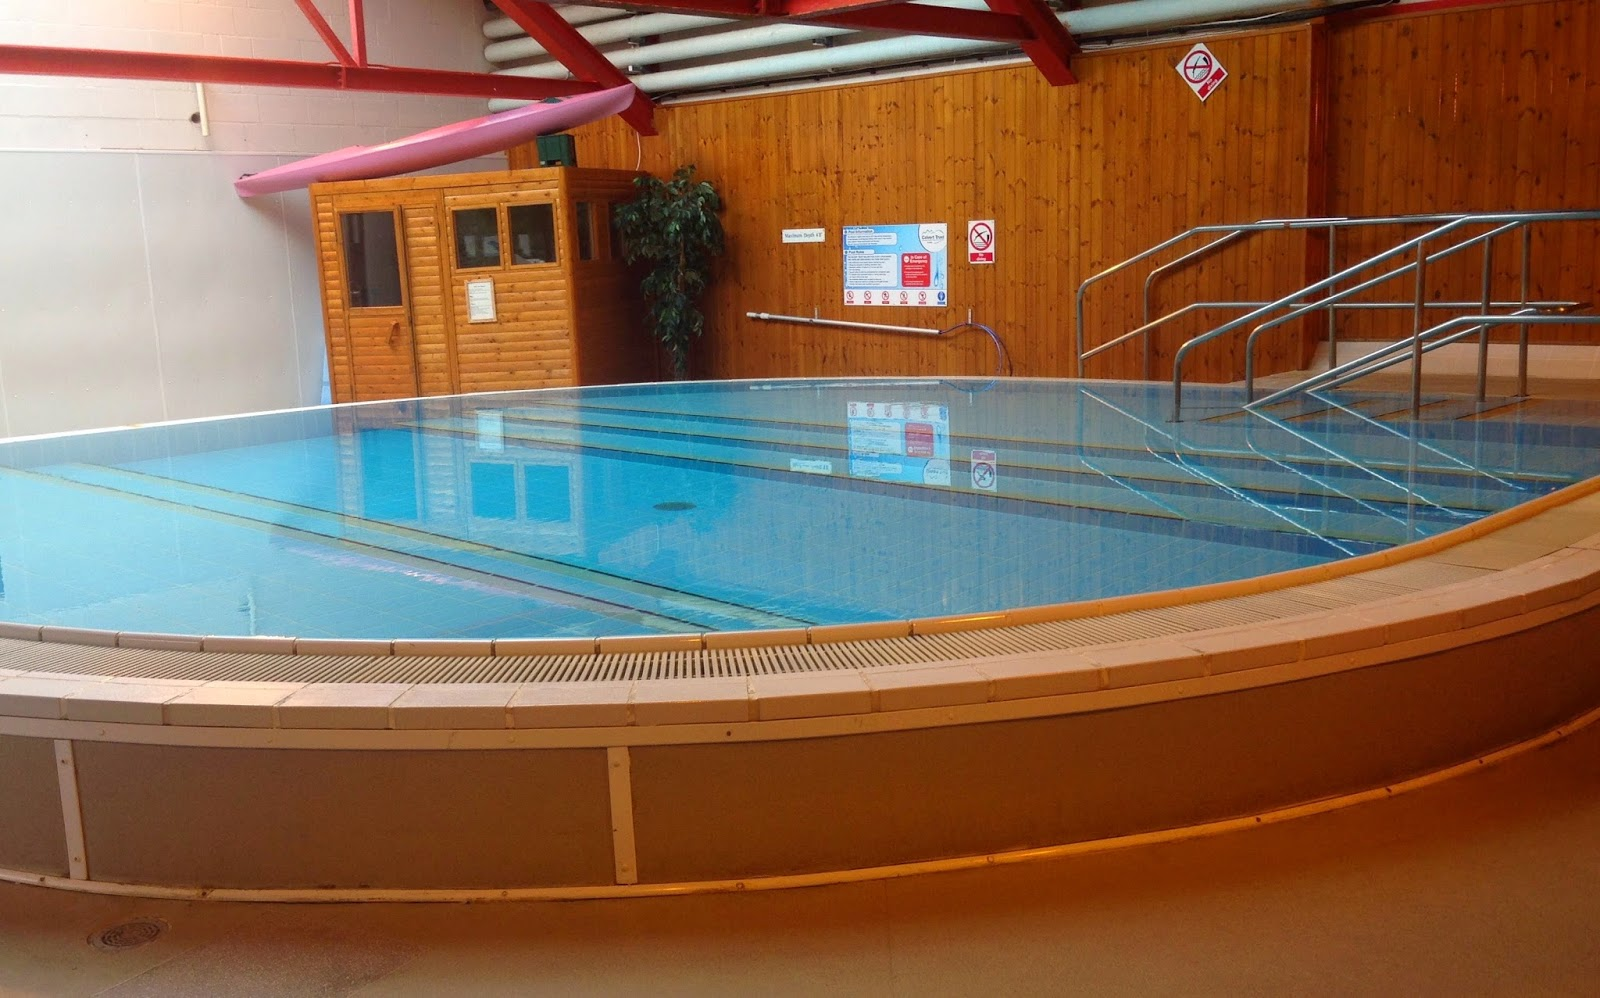 Hydrotherapy pool at The Calvert Trust, Kielder - A review